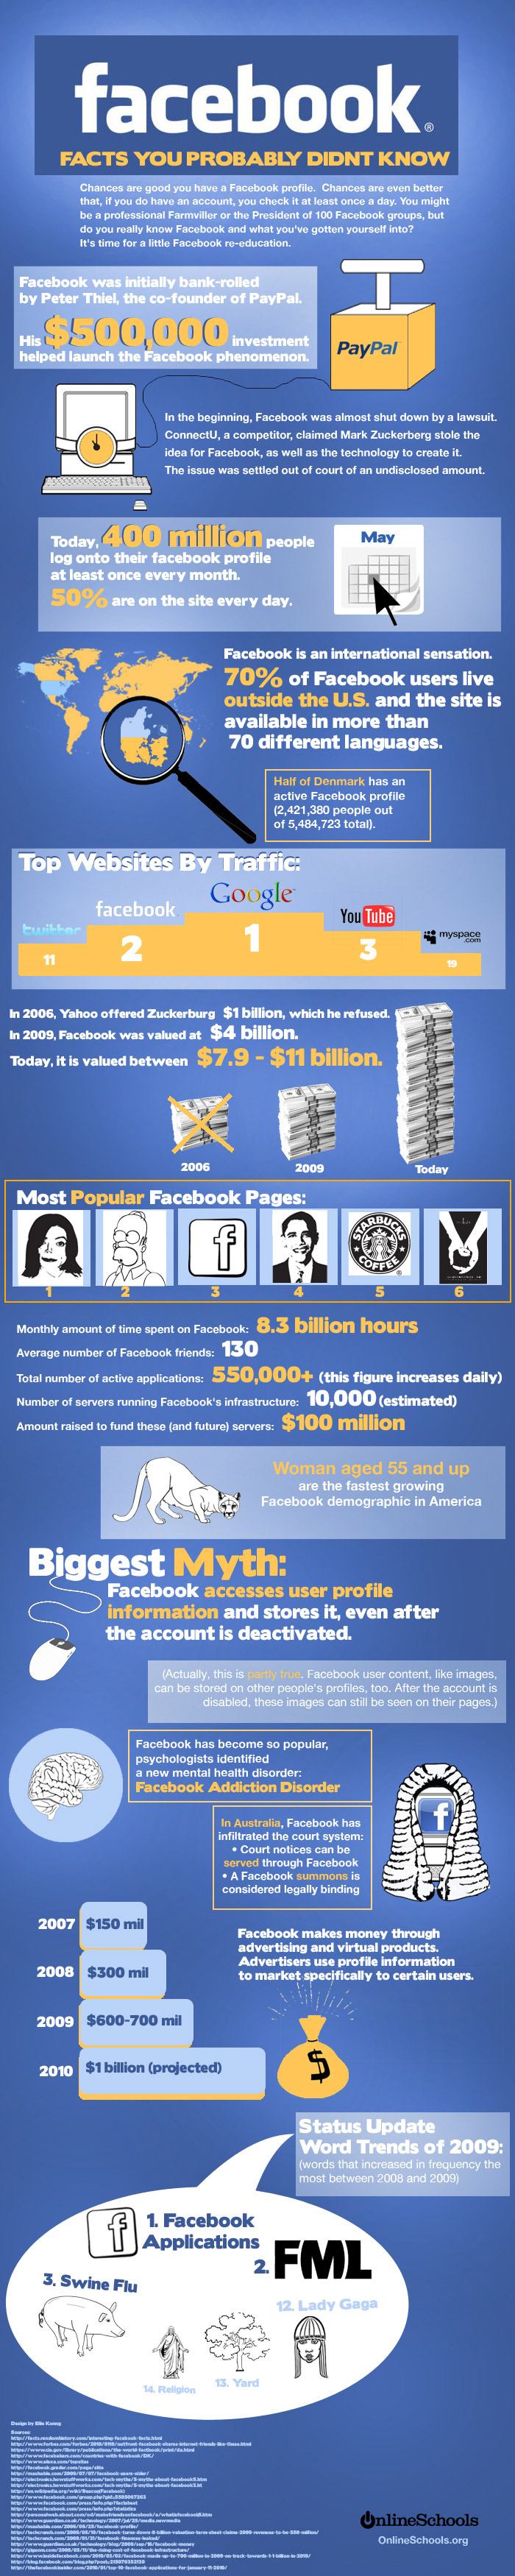 Facebook: Facts You Probably Didn't Know